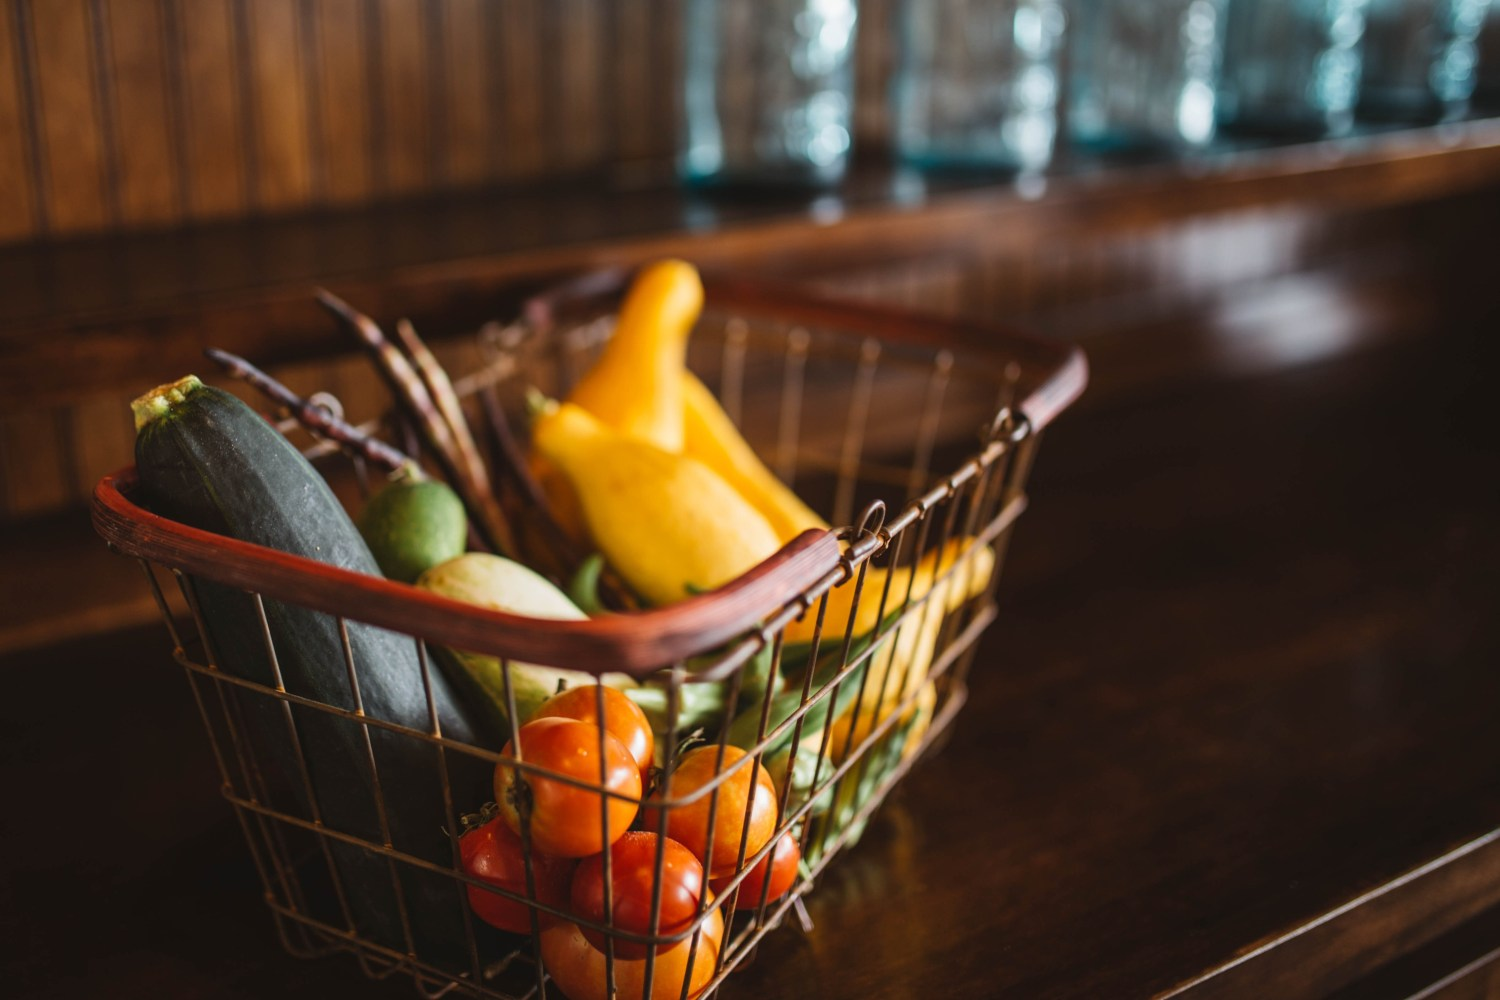 Canva-Basket-with-groceries.jpg